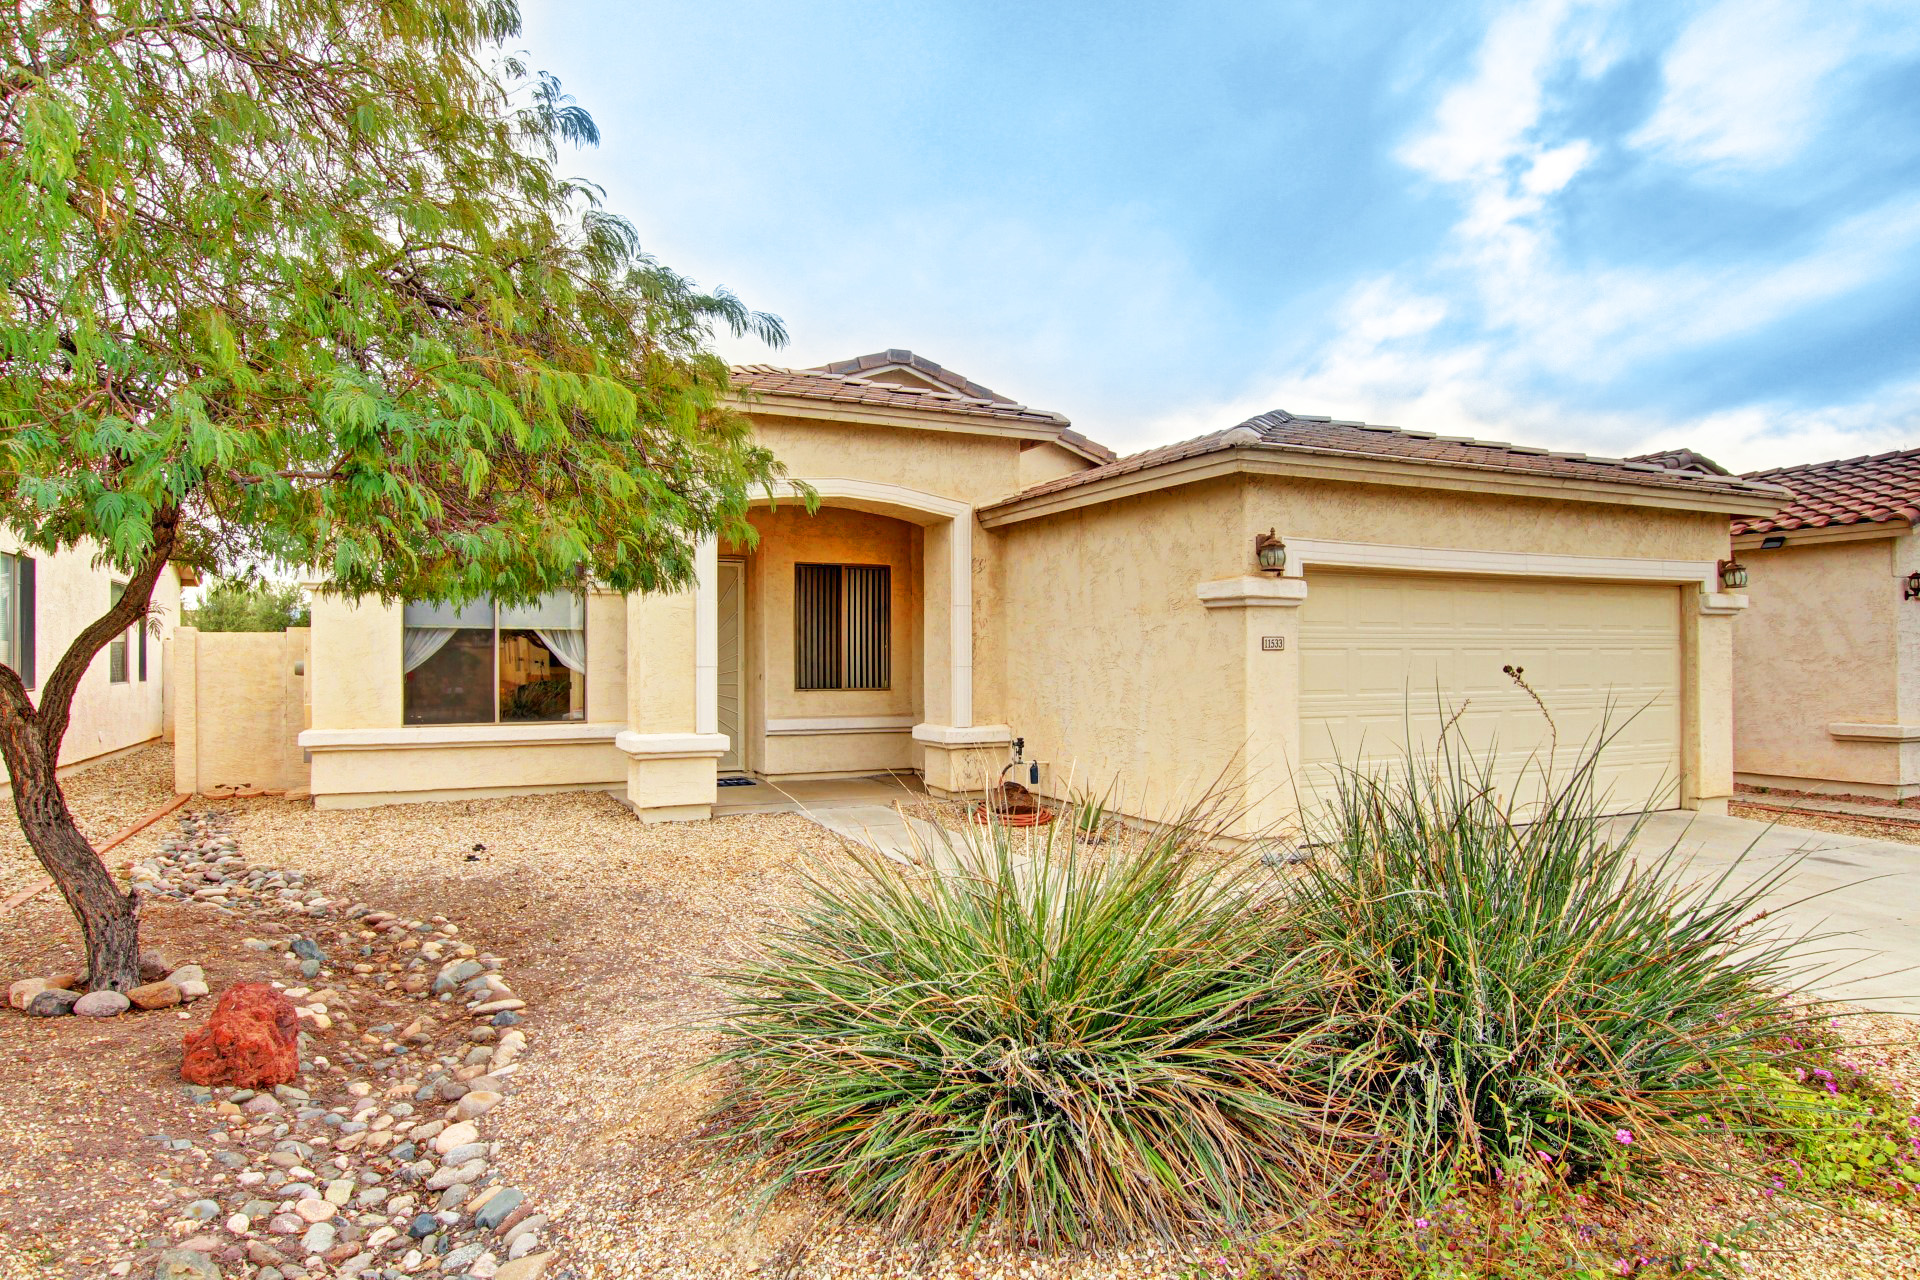 3 Bed 2 Bath Stucco House In Garden Lakes Avondale Az